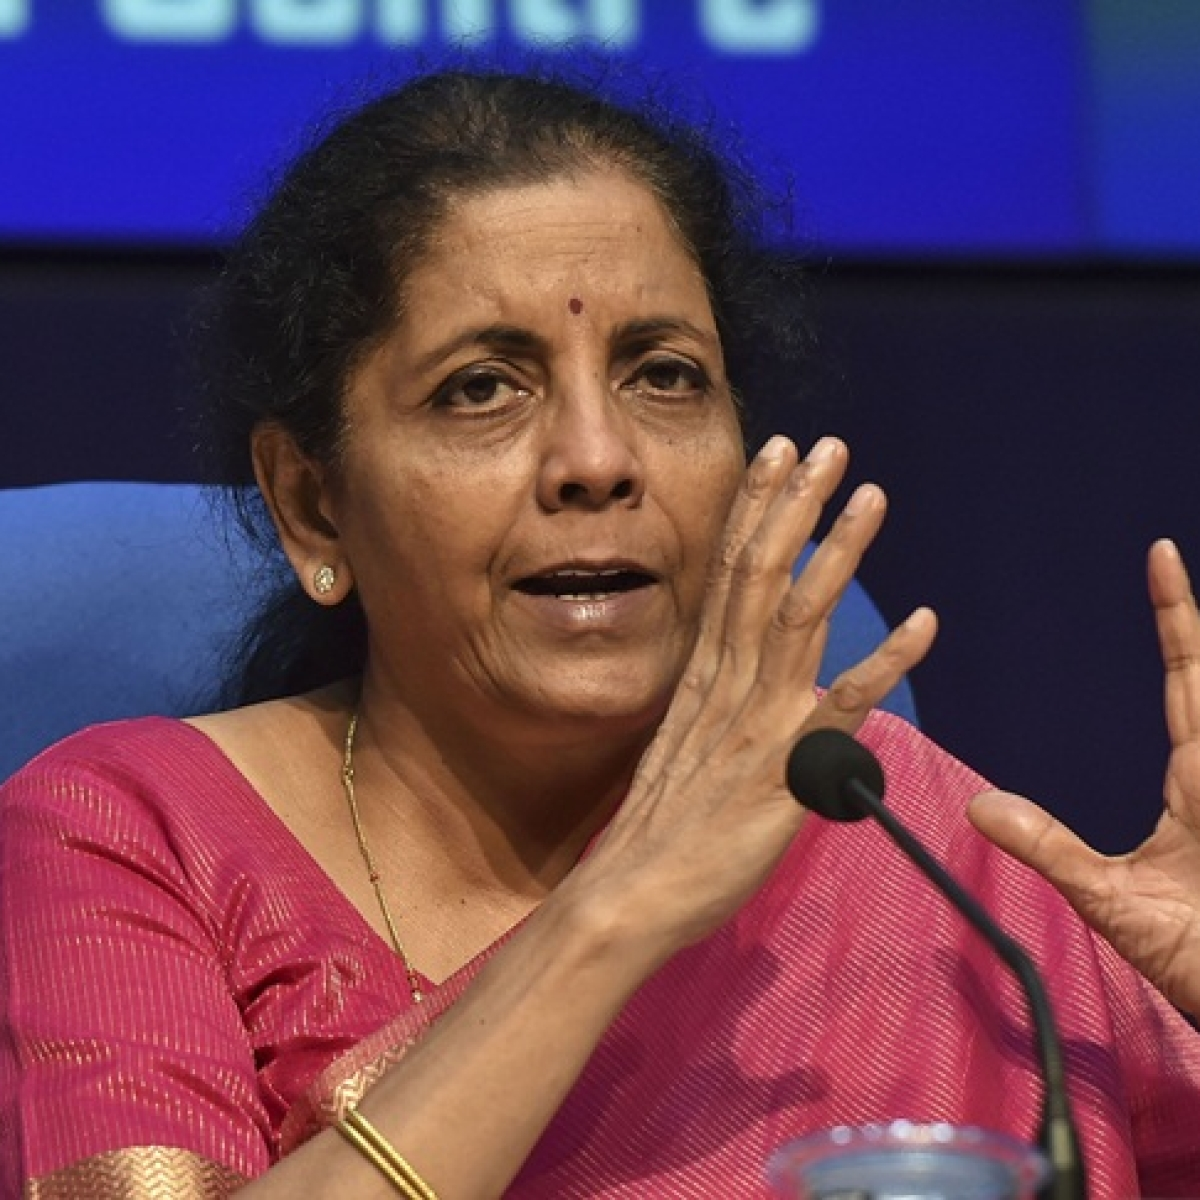 Business failures should not be looked down upon: FM Nirmala Sitharaman on CCD founder VG Siddhartha's death